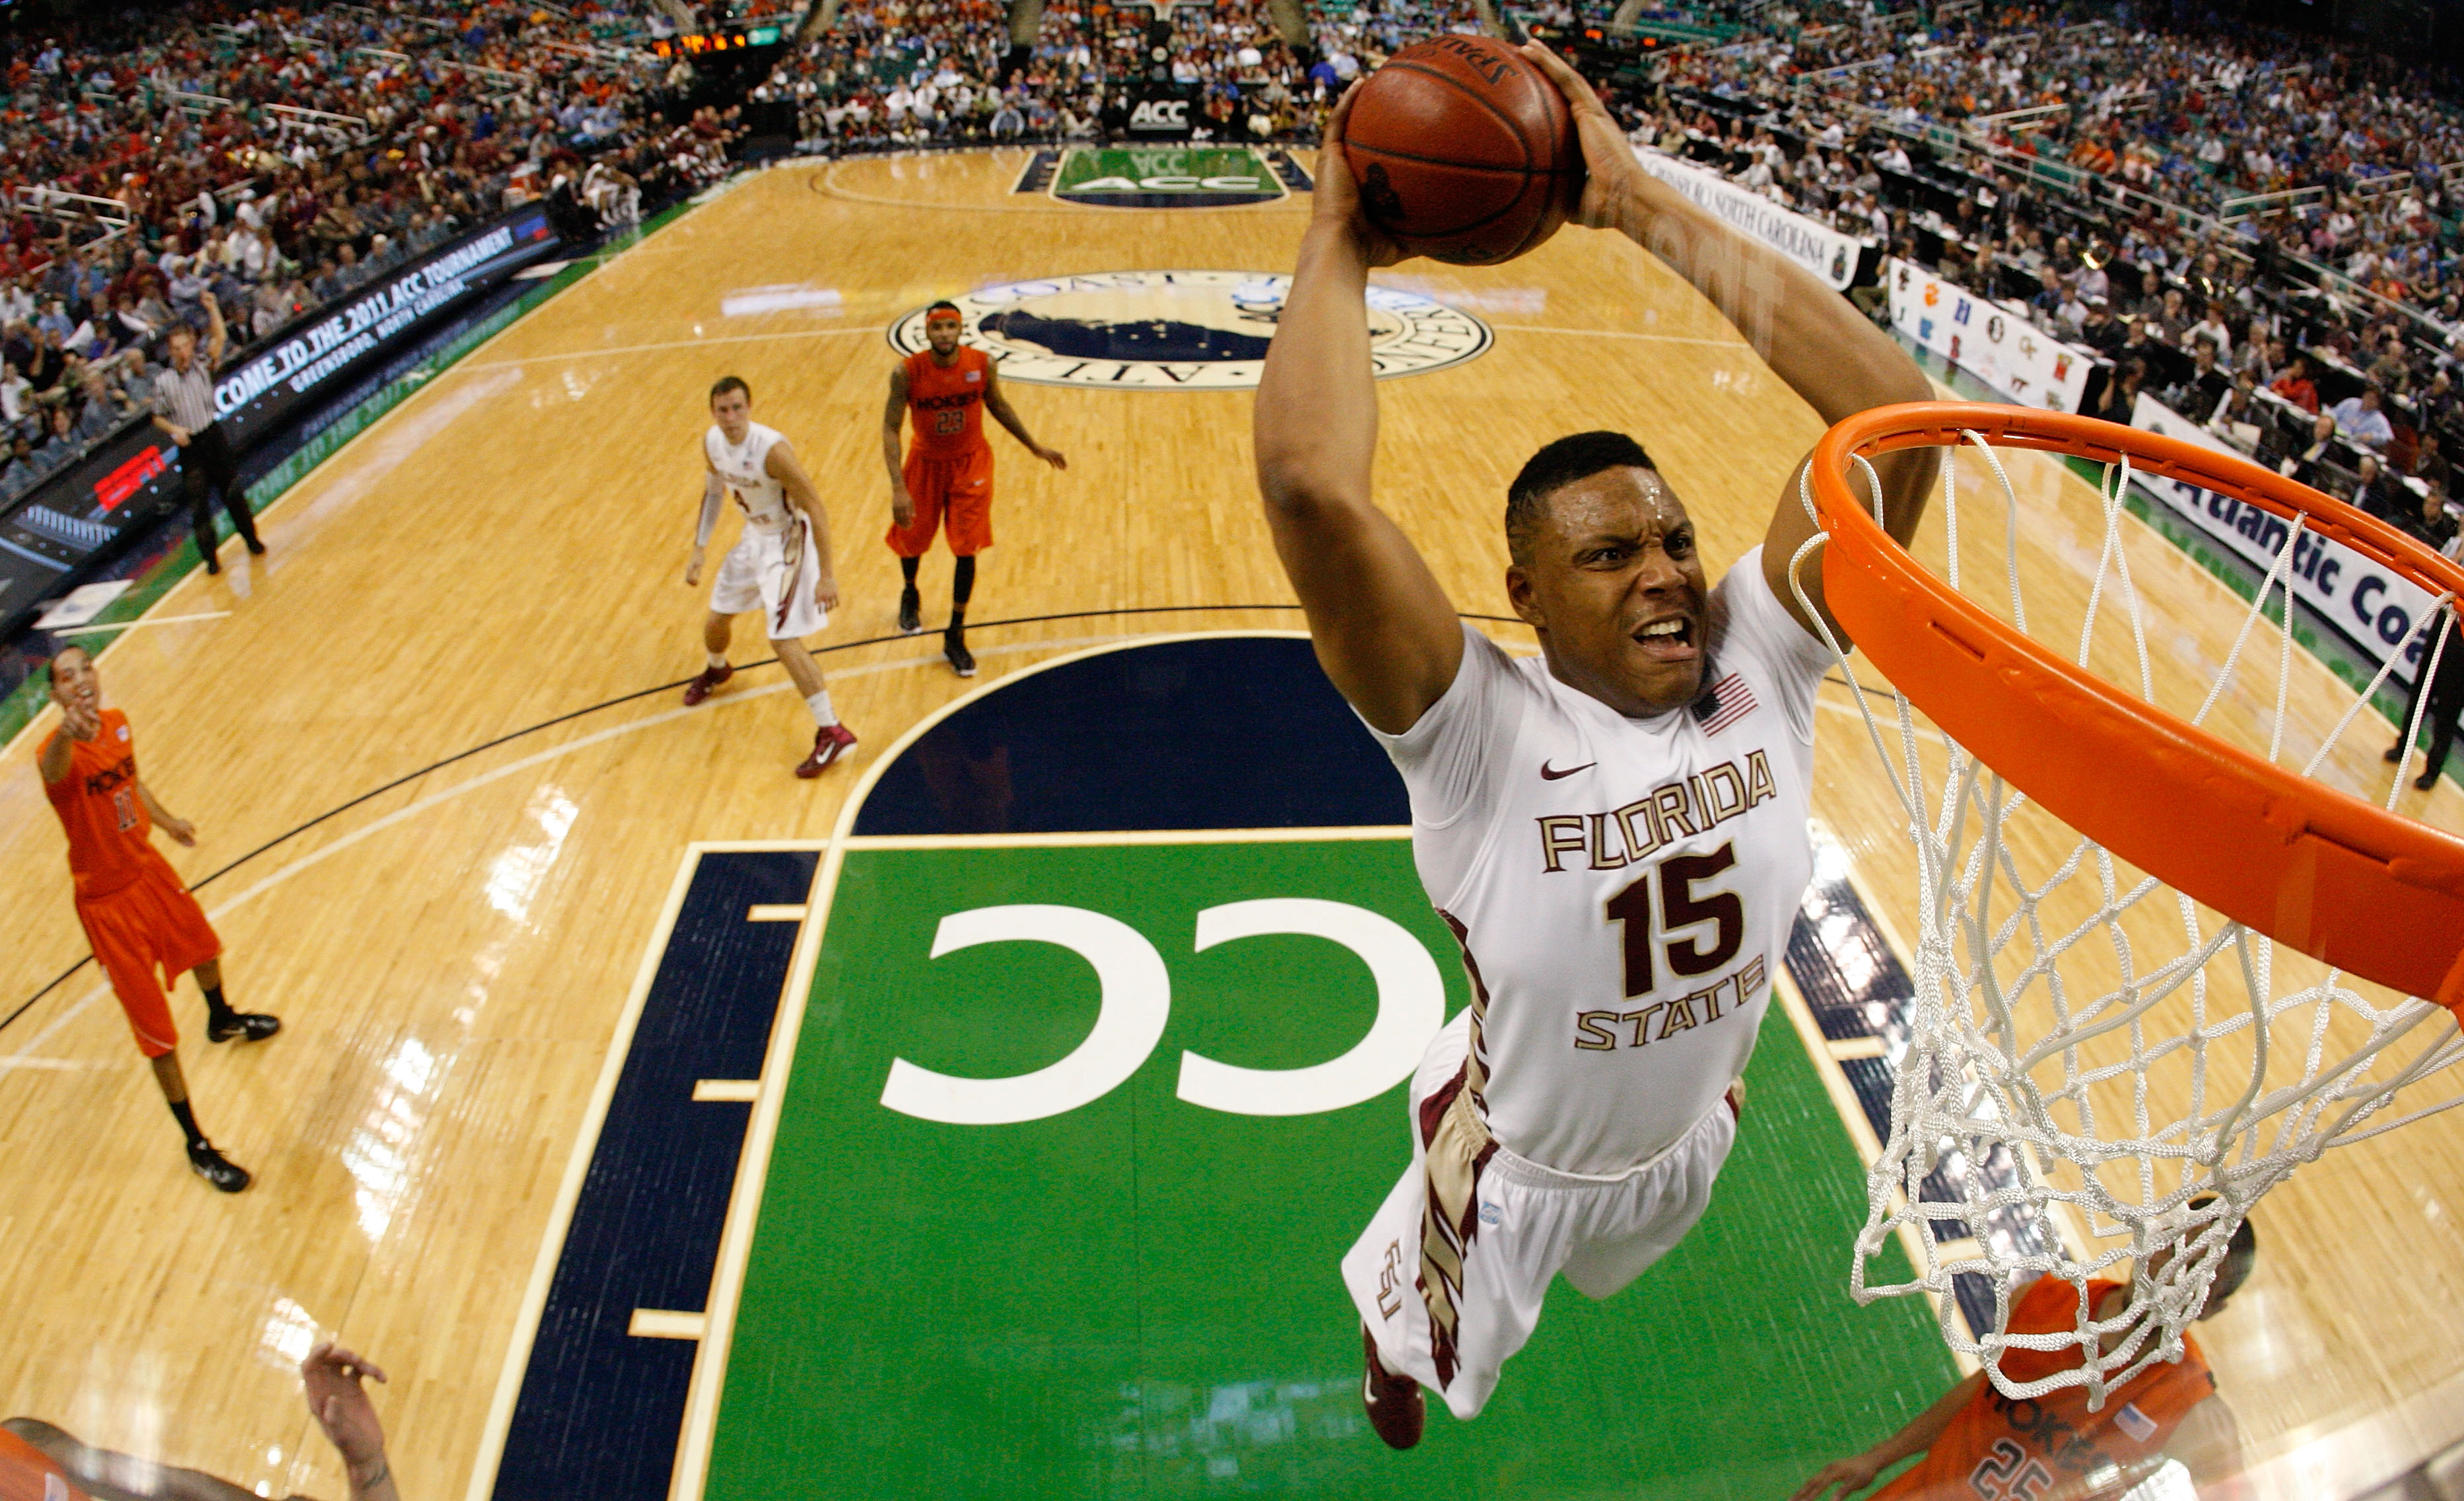 GREENSBORO, NC - MARCH 11:  Terrance Shannon #15 of the Florida State Seminoles shoots against the Virginia Tech Hokies in the quarterfinals of the 2011 ACC men's basketball tournament at the Greensboro Coliseum on March 11, 2011 in Greensboro, North Caro